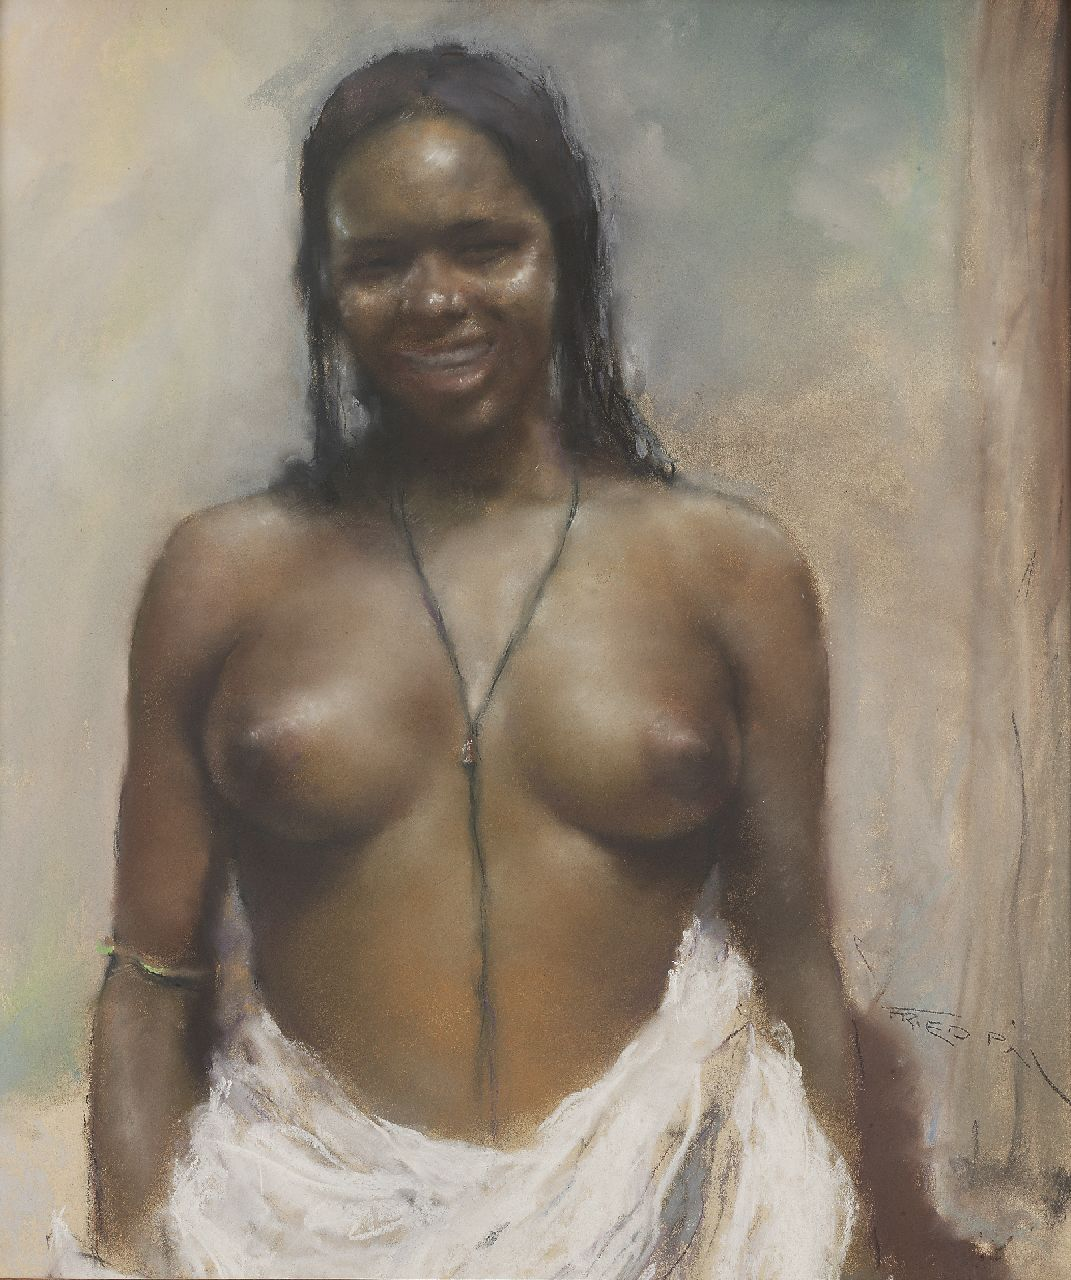 Fried P.  | Pal Fried, African nude, pastel on paper 80.0 x 70.0 cm, signed l.r.